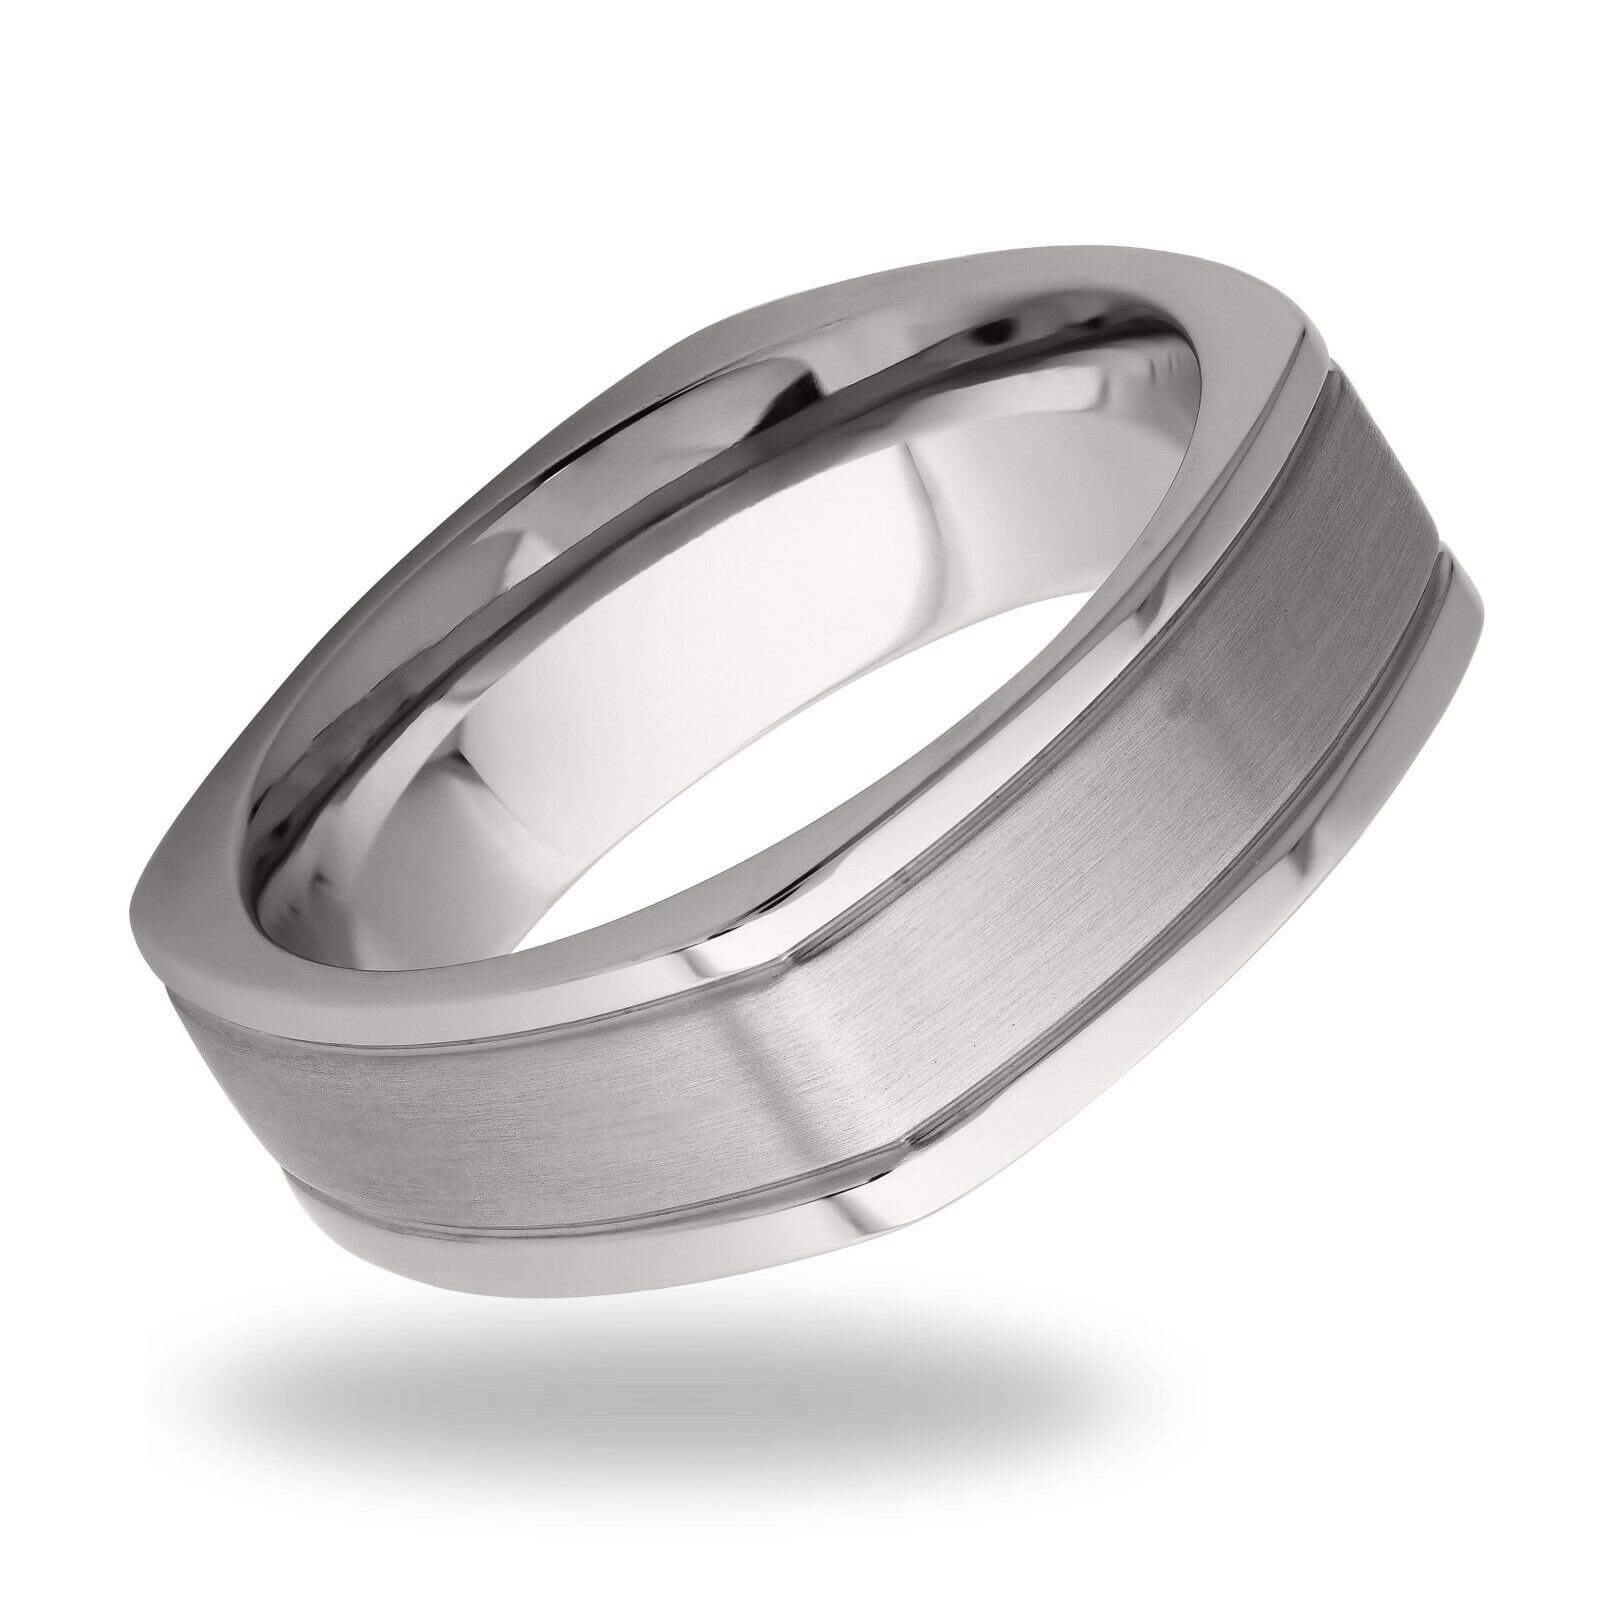 Men's Solid Stainless Steel Chunky Band Ring Size 8.5 Gents Fashion Jewelry Gift